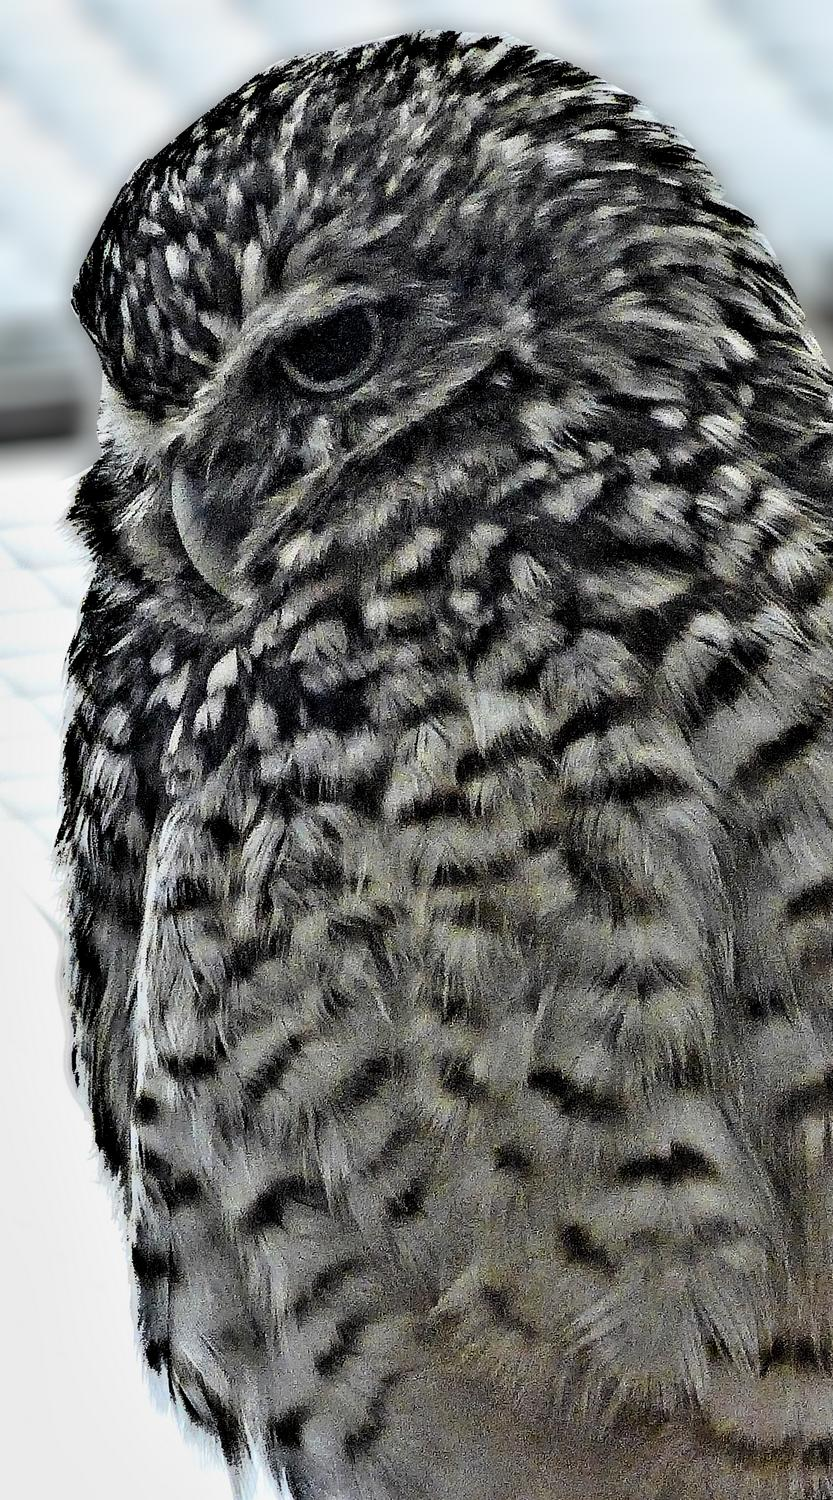 - Mr. Owl, reduced to black and white. - - Panasonic DMC-LF1 - Washington DC National zoo - Tony Karp, design, art, photography, techno-impressionist, techno-impressionism, aerial photography , drone , drones , dji , mavic pro , video , 3D printing - Books -